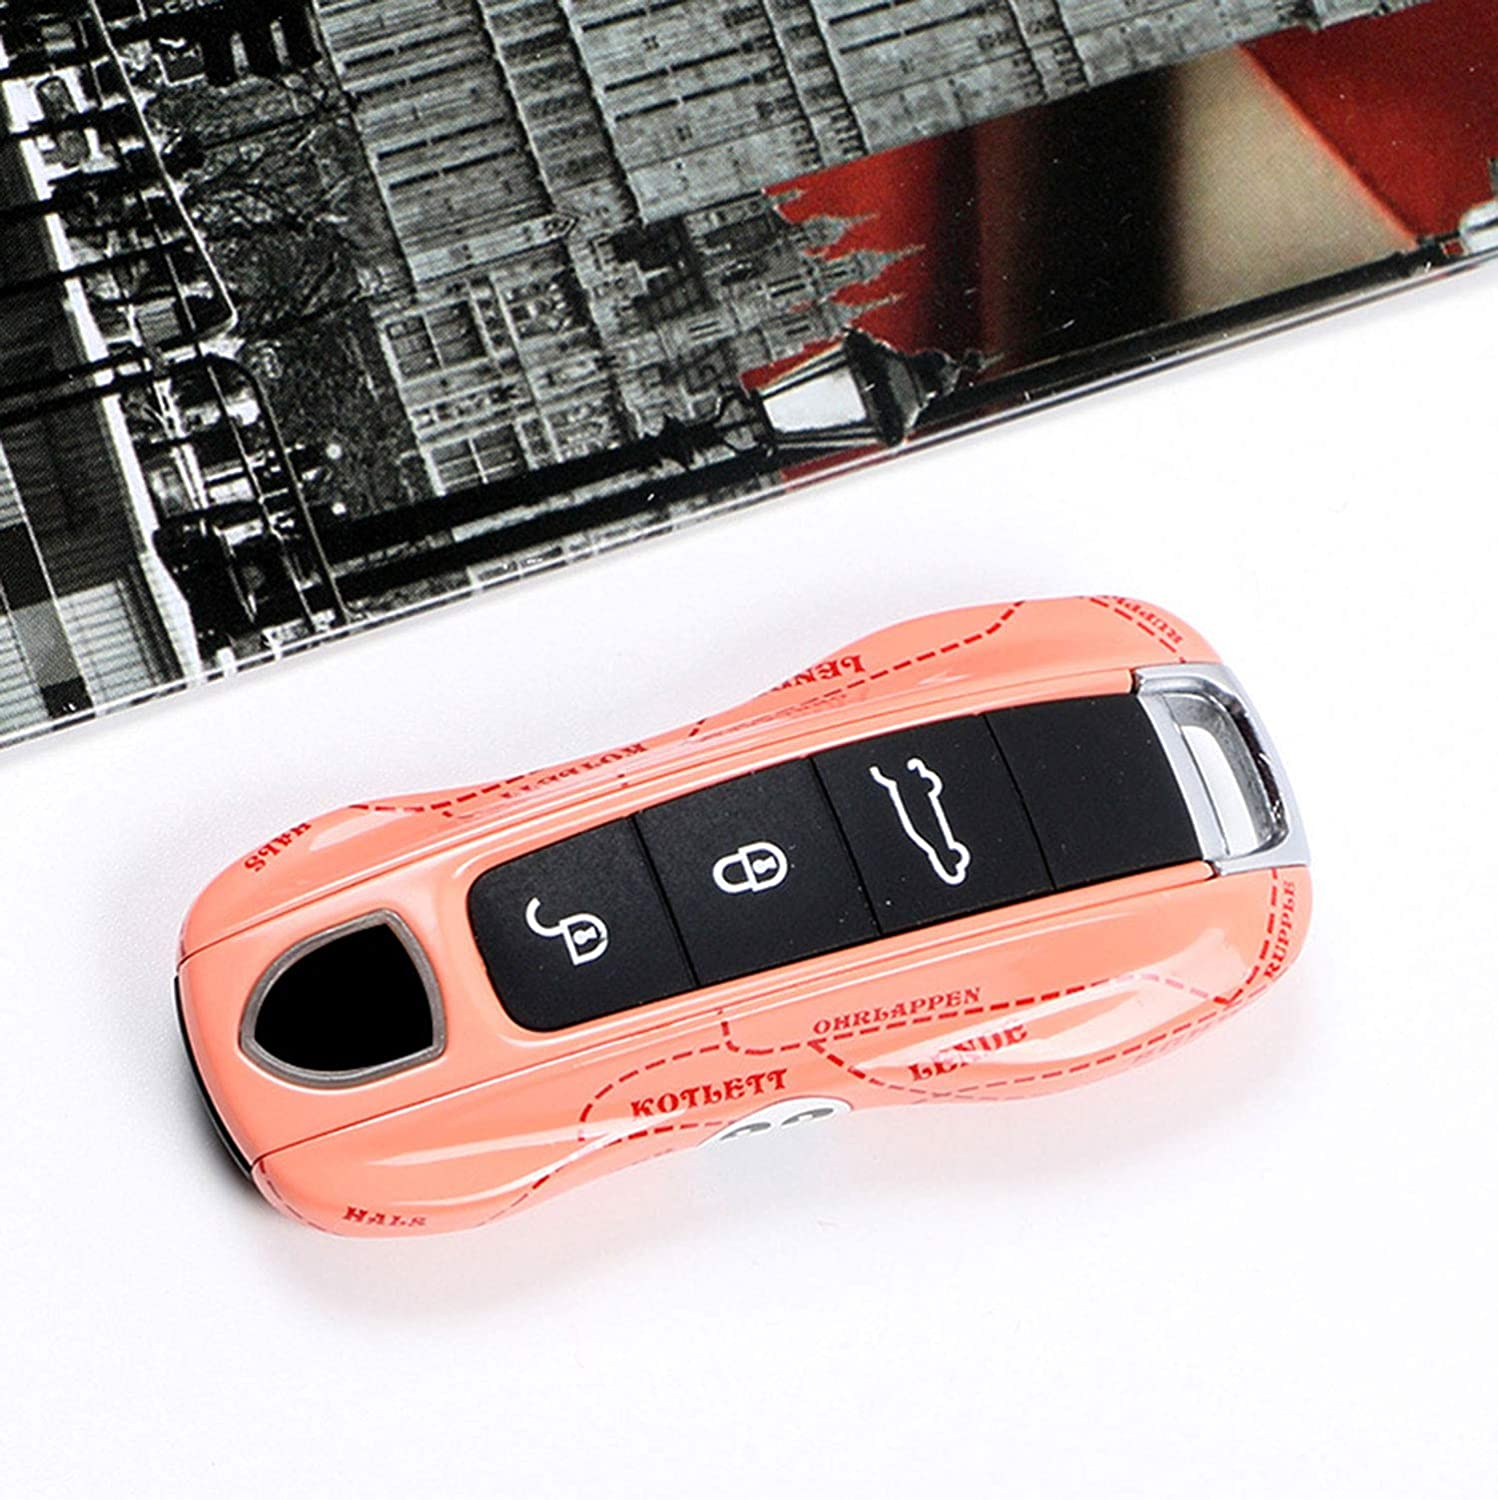 AType White Kwaks Car Key Case Compatible for Porsche Panamera 971 Cayenne 9YA Macan 911 718 Boxster White Key Holder Car Key Cover